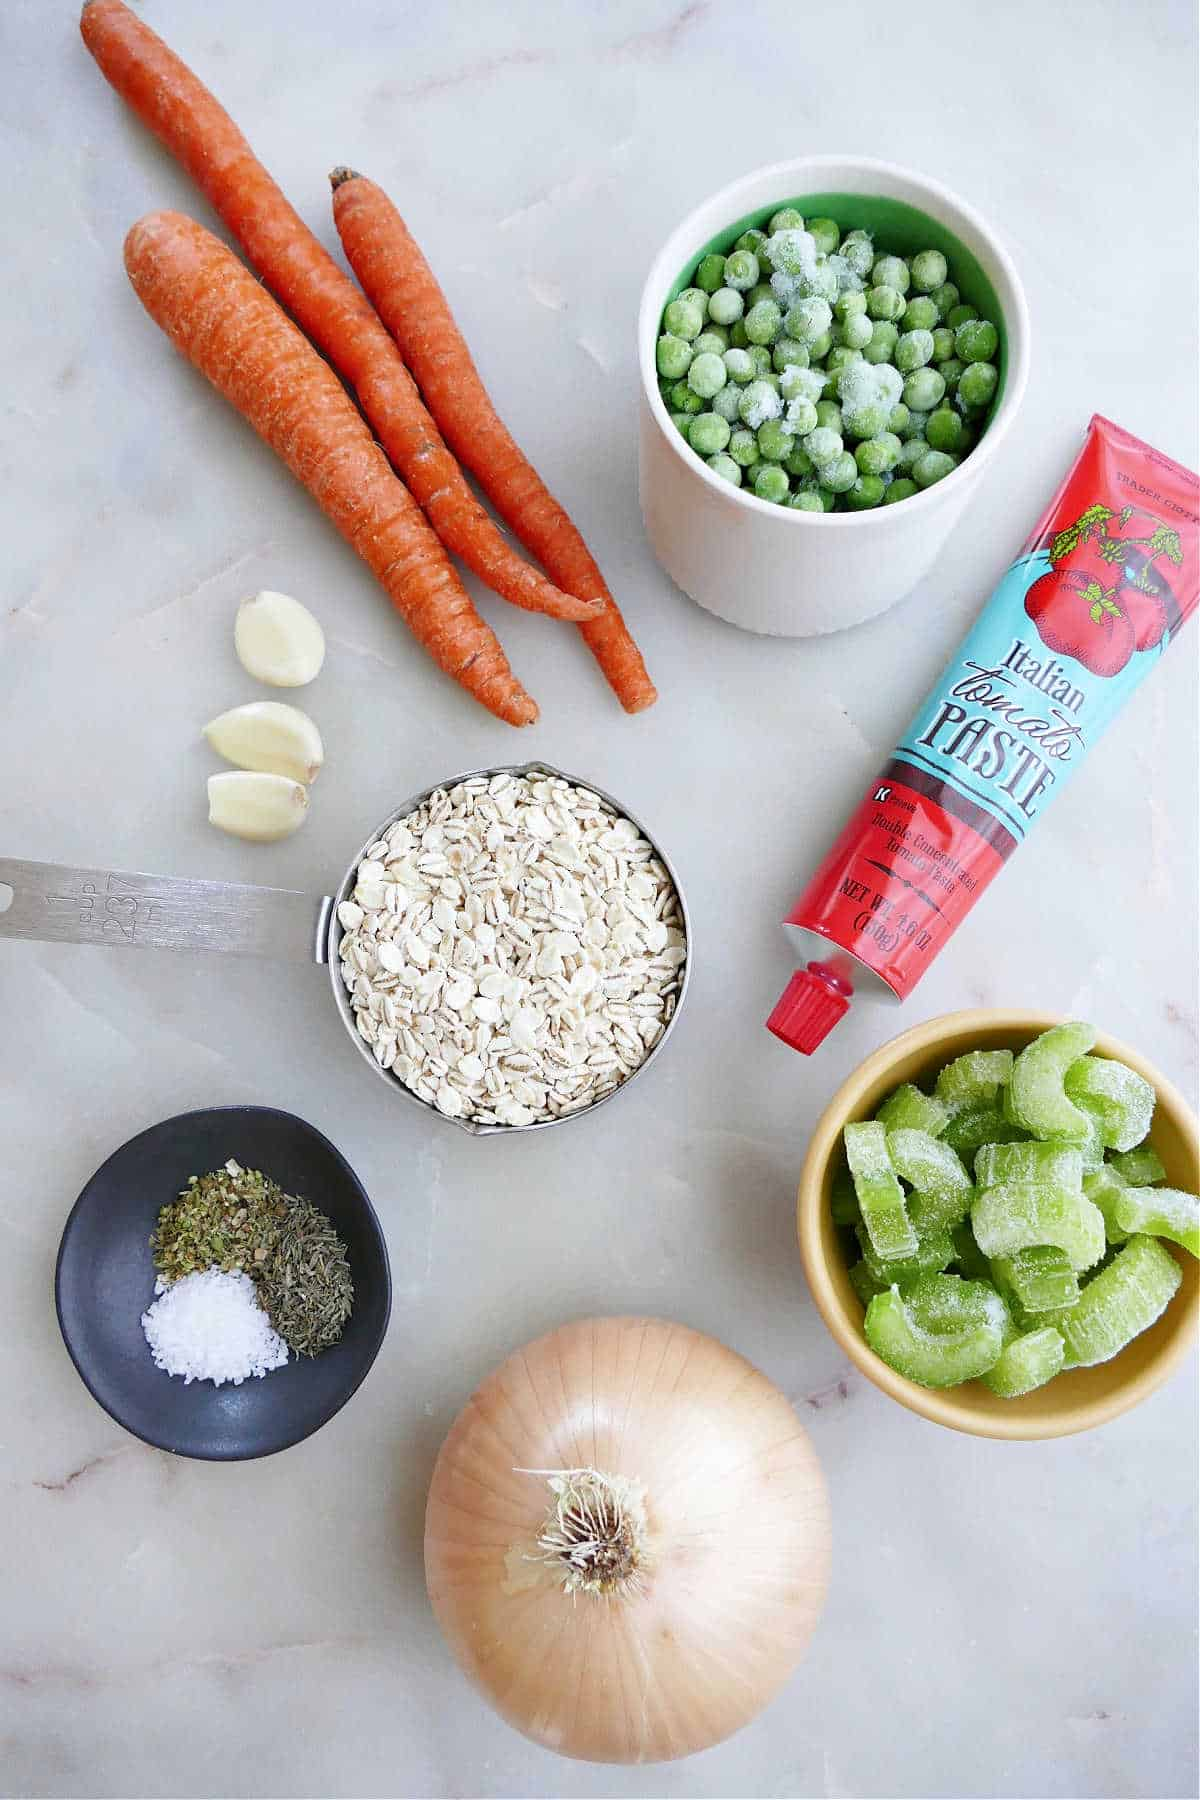 carrots, celery, tomato paste, barley, garlic, celery, onion, and seasonings on a counter